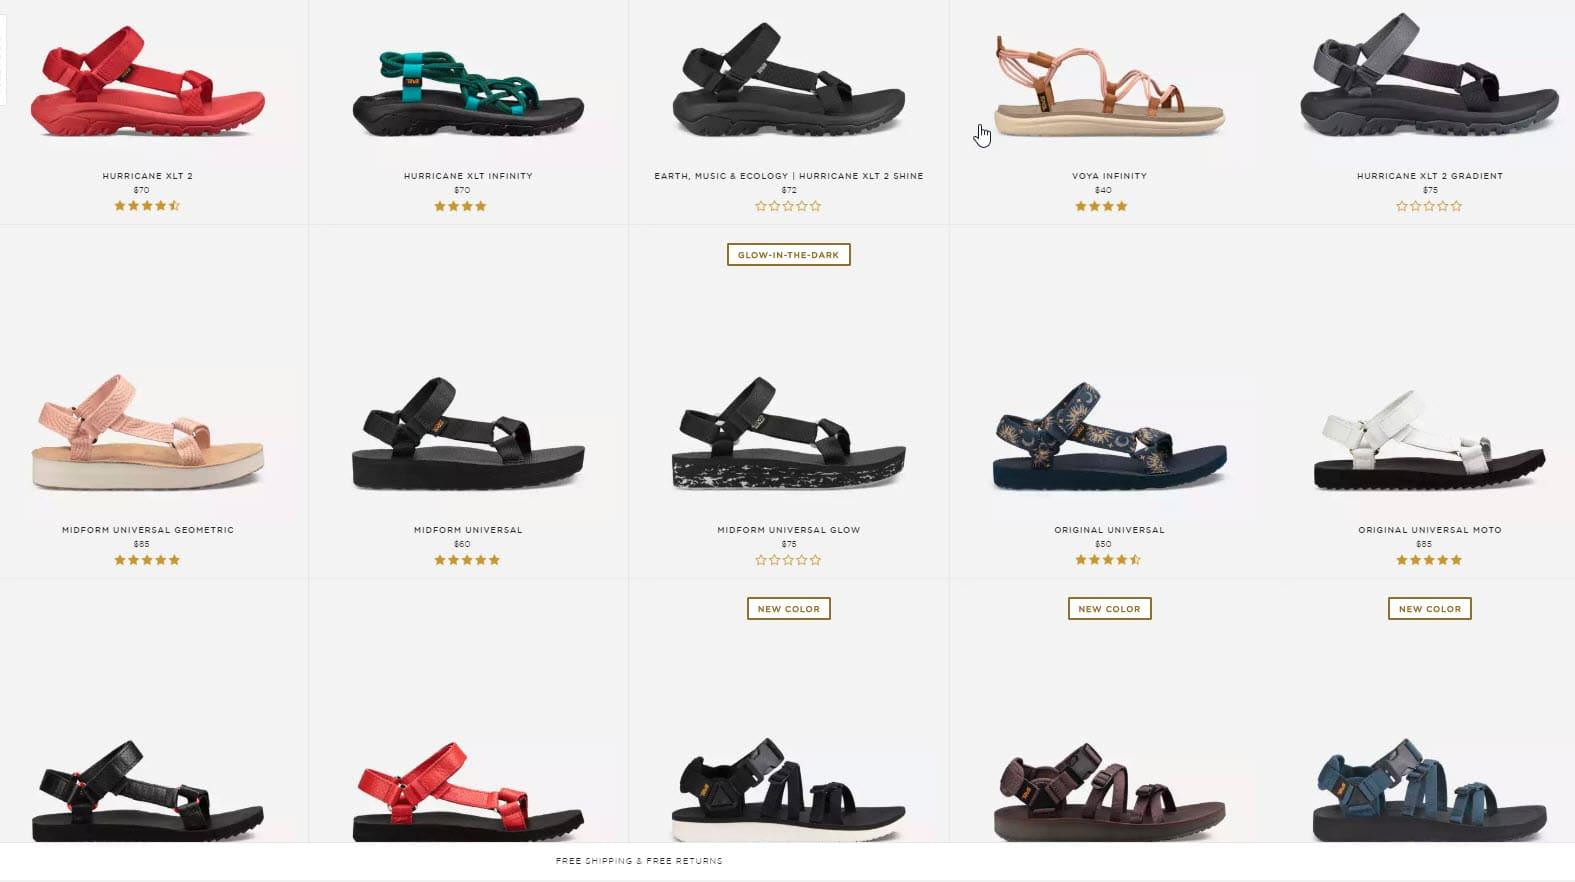 Baby Boomer Women | Fashion Over 50 | Teva Sandals